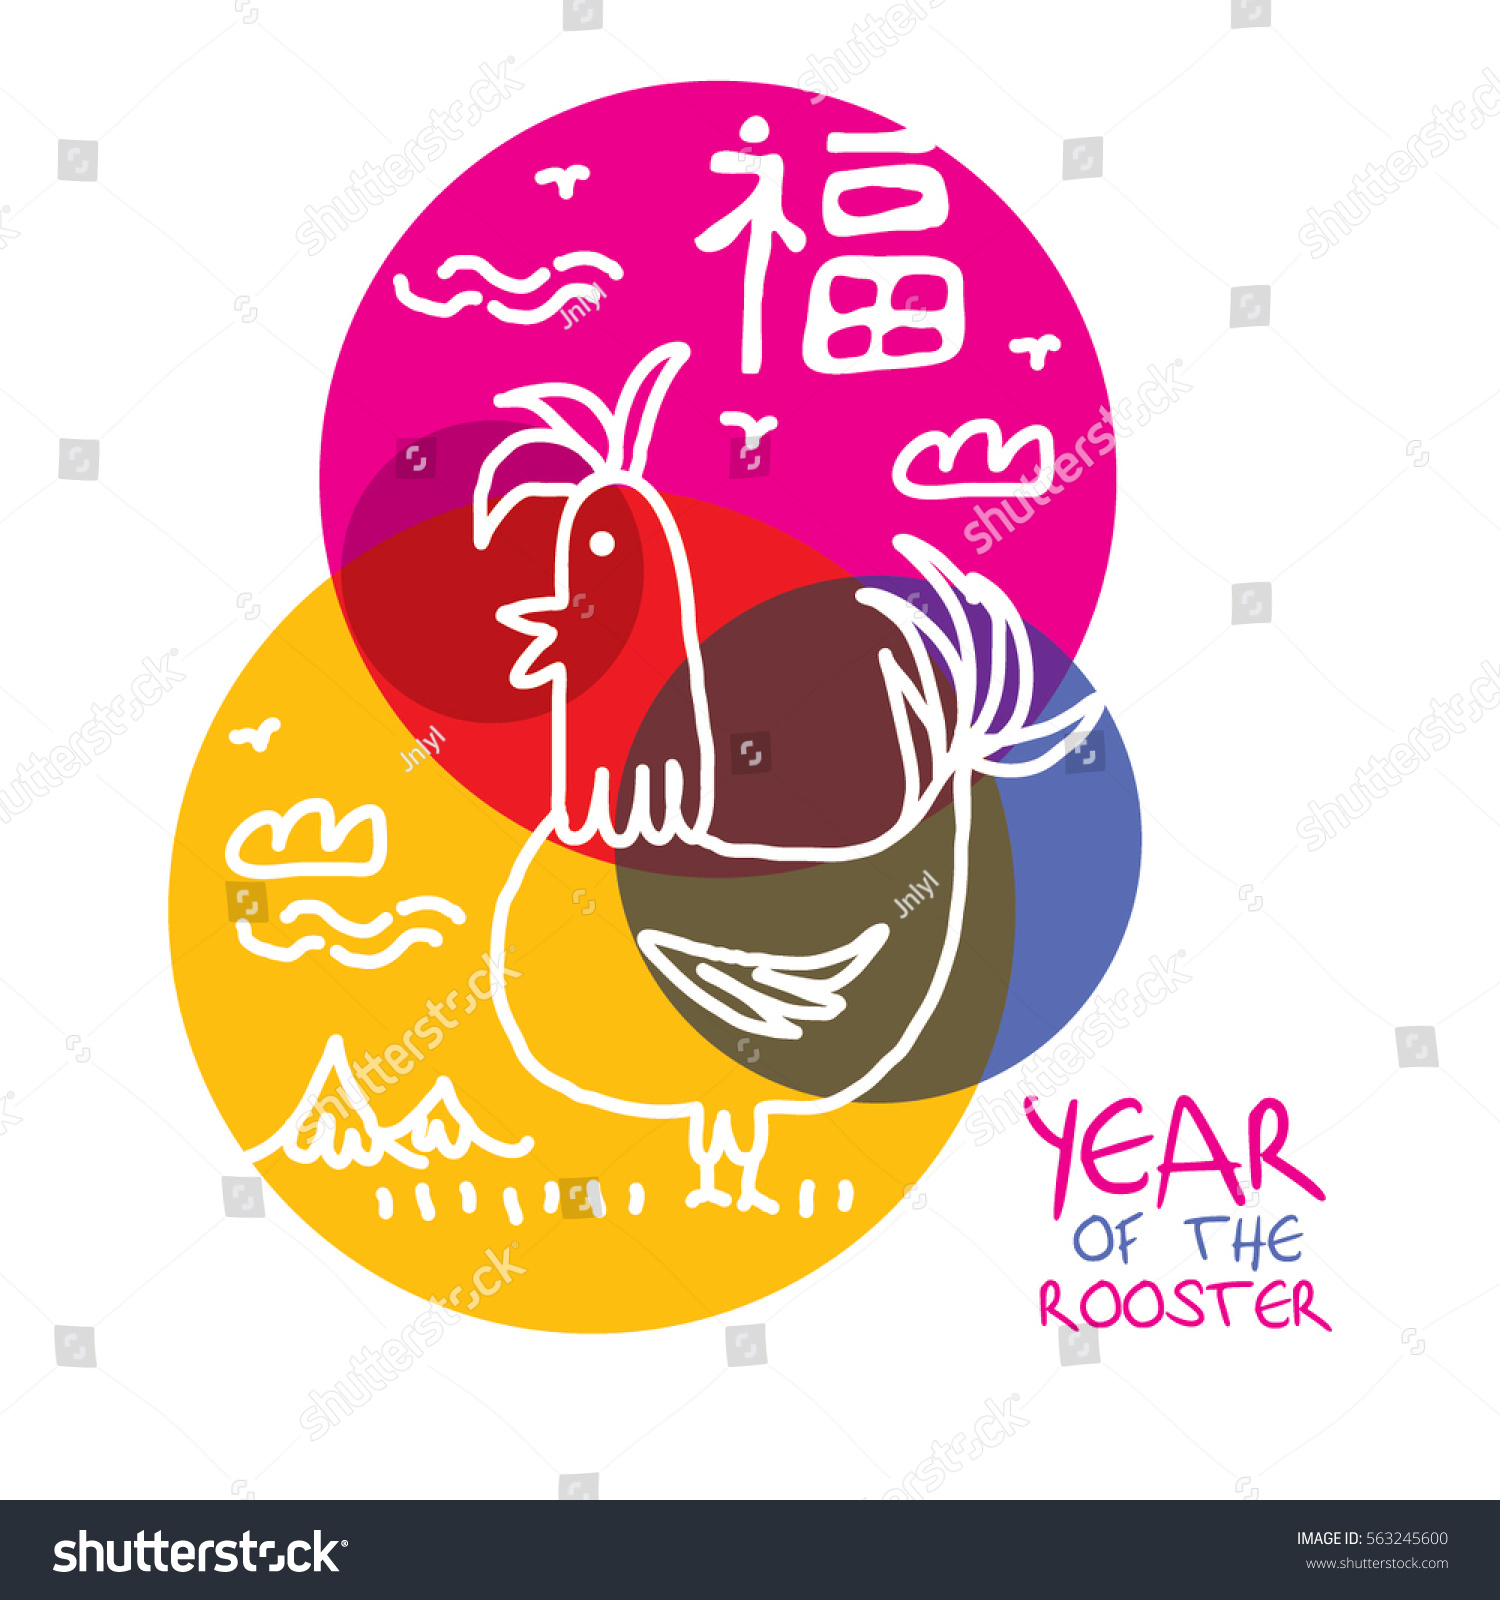 Year rooster chinese new year greetings stock vector 563245600 year of the rooster chinese new year greetings hand sketches illustration with colorful background kristyandbryce Image collections